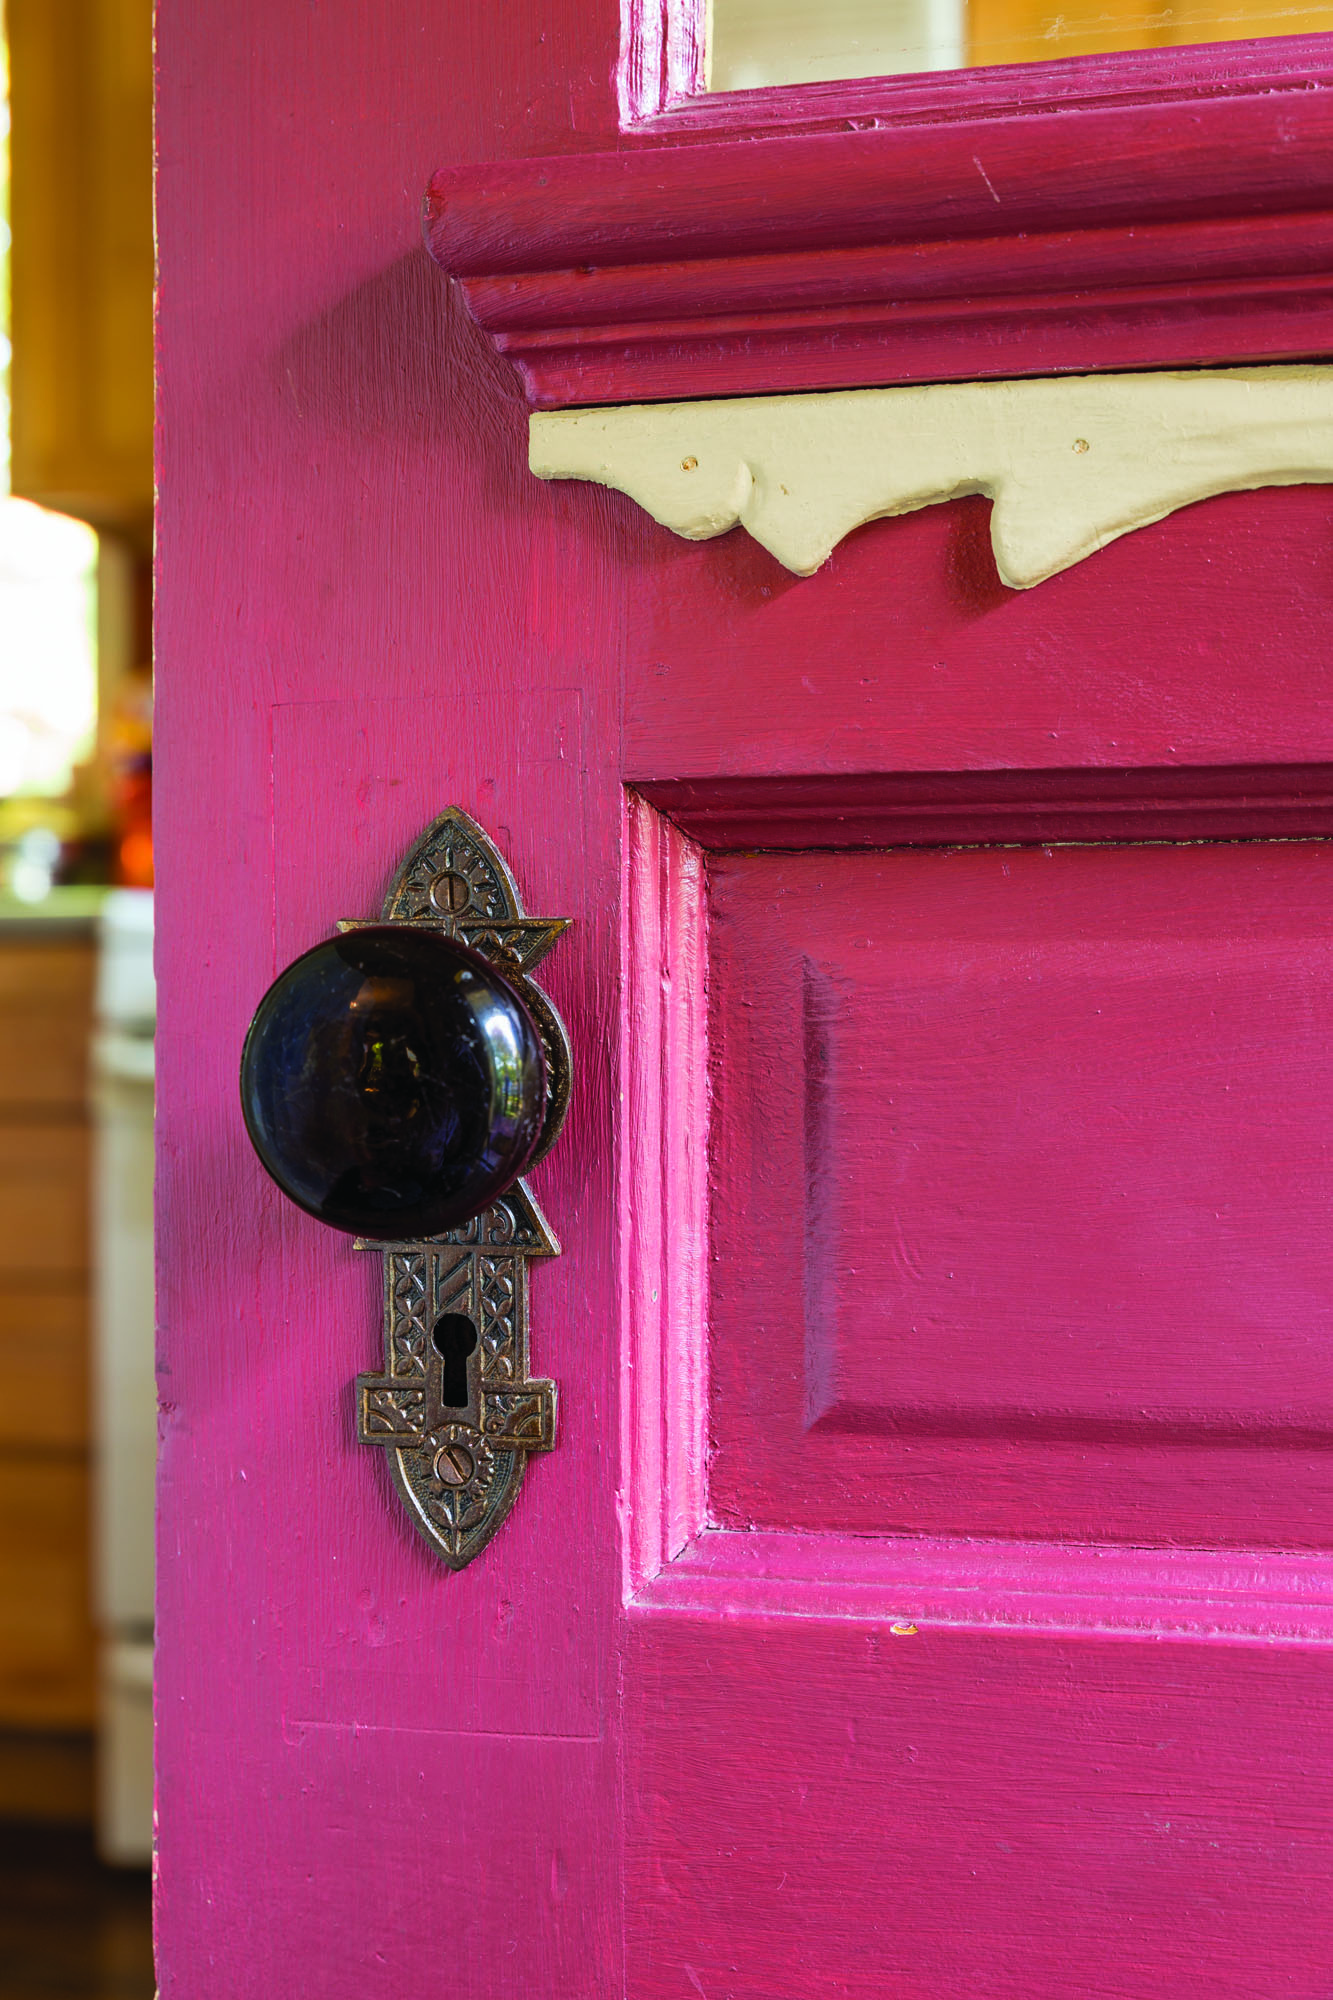 Original locksets were stripped and restored; the back door has panels with mouldings and a decorative onlay.